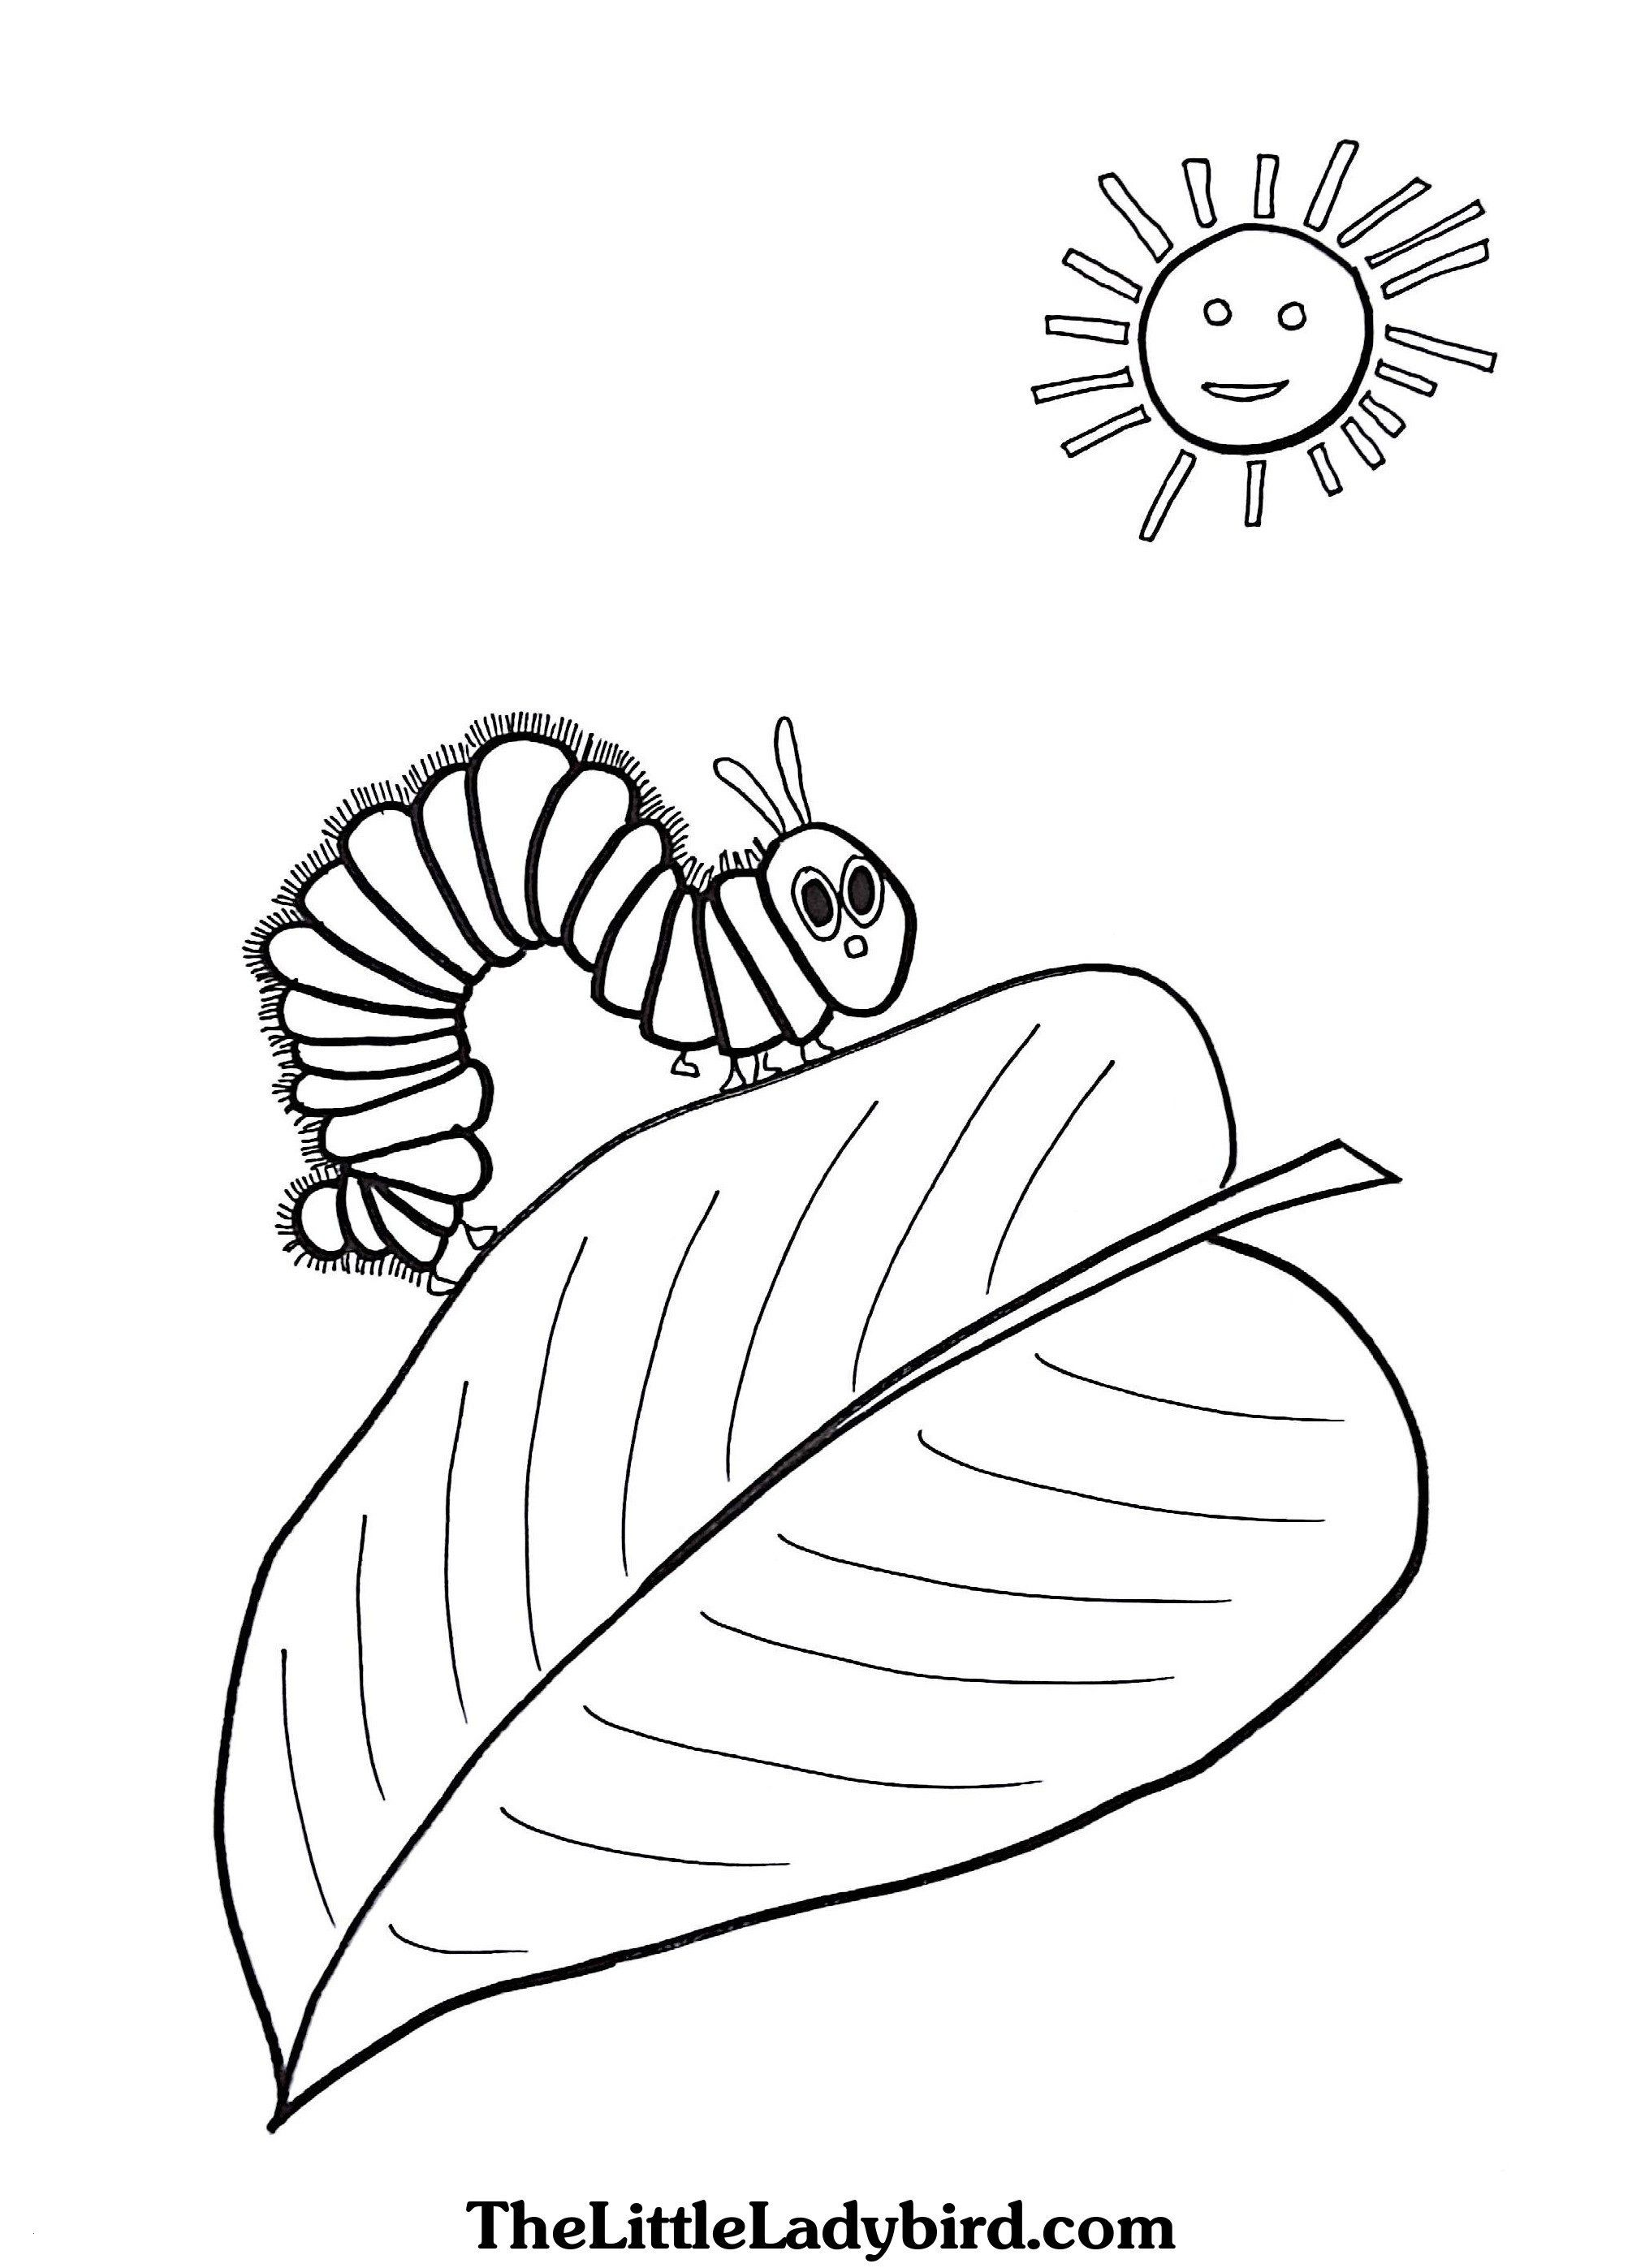 Very Hungry Caterpillar Coloring Page Inspirational Photos Coloring Pages F Very Hungry Caterpillar Printables Hungry Caterpillar Hungry Caterpillar Activities